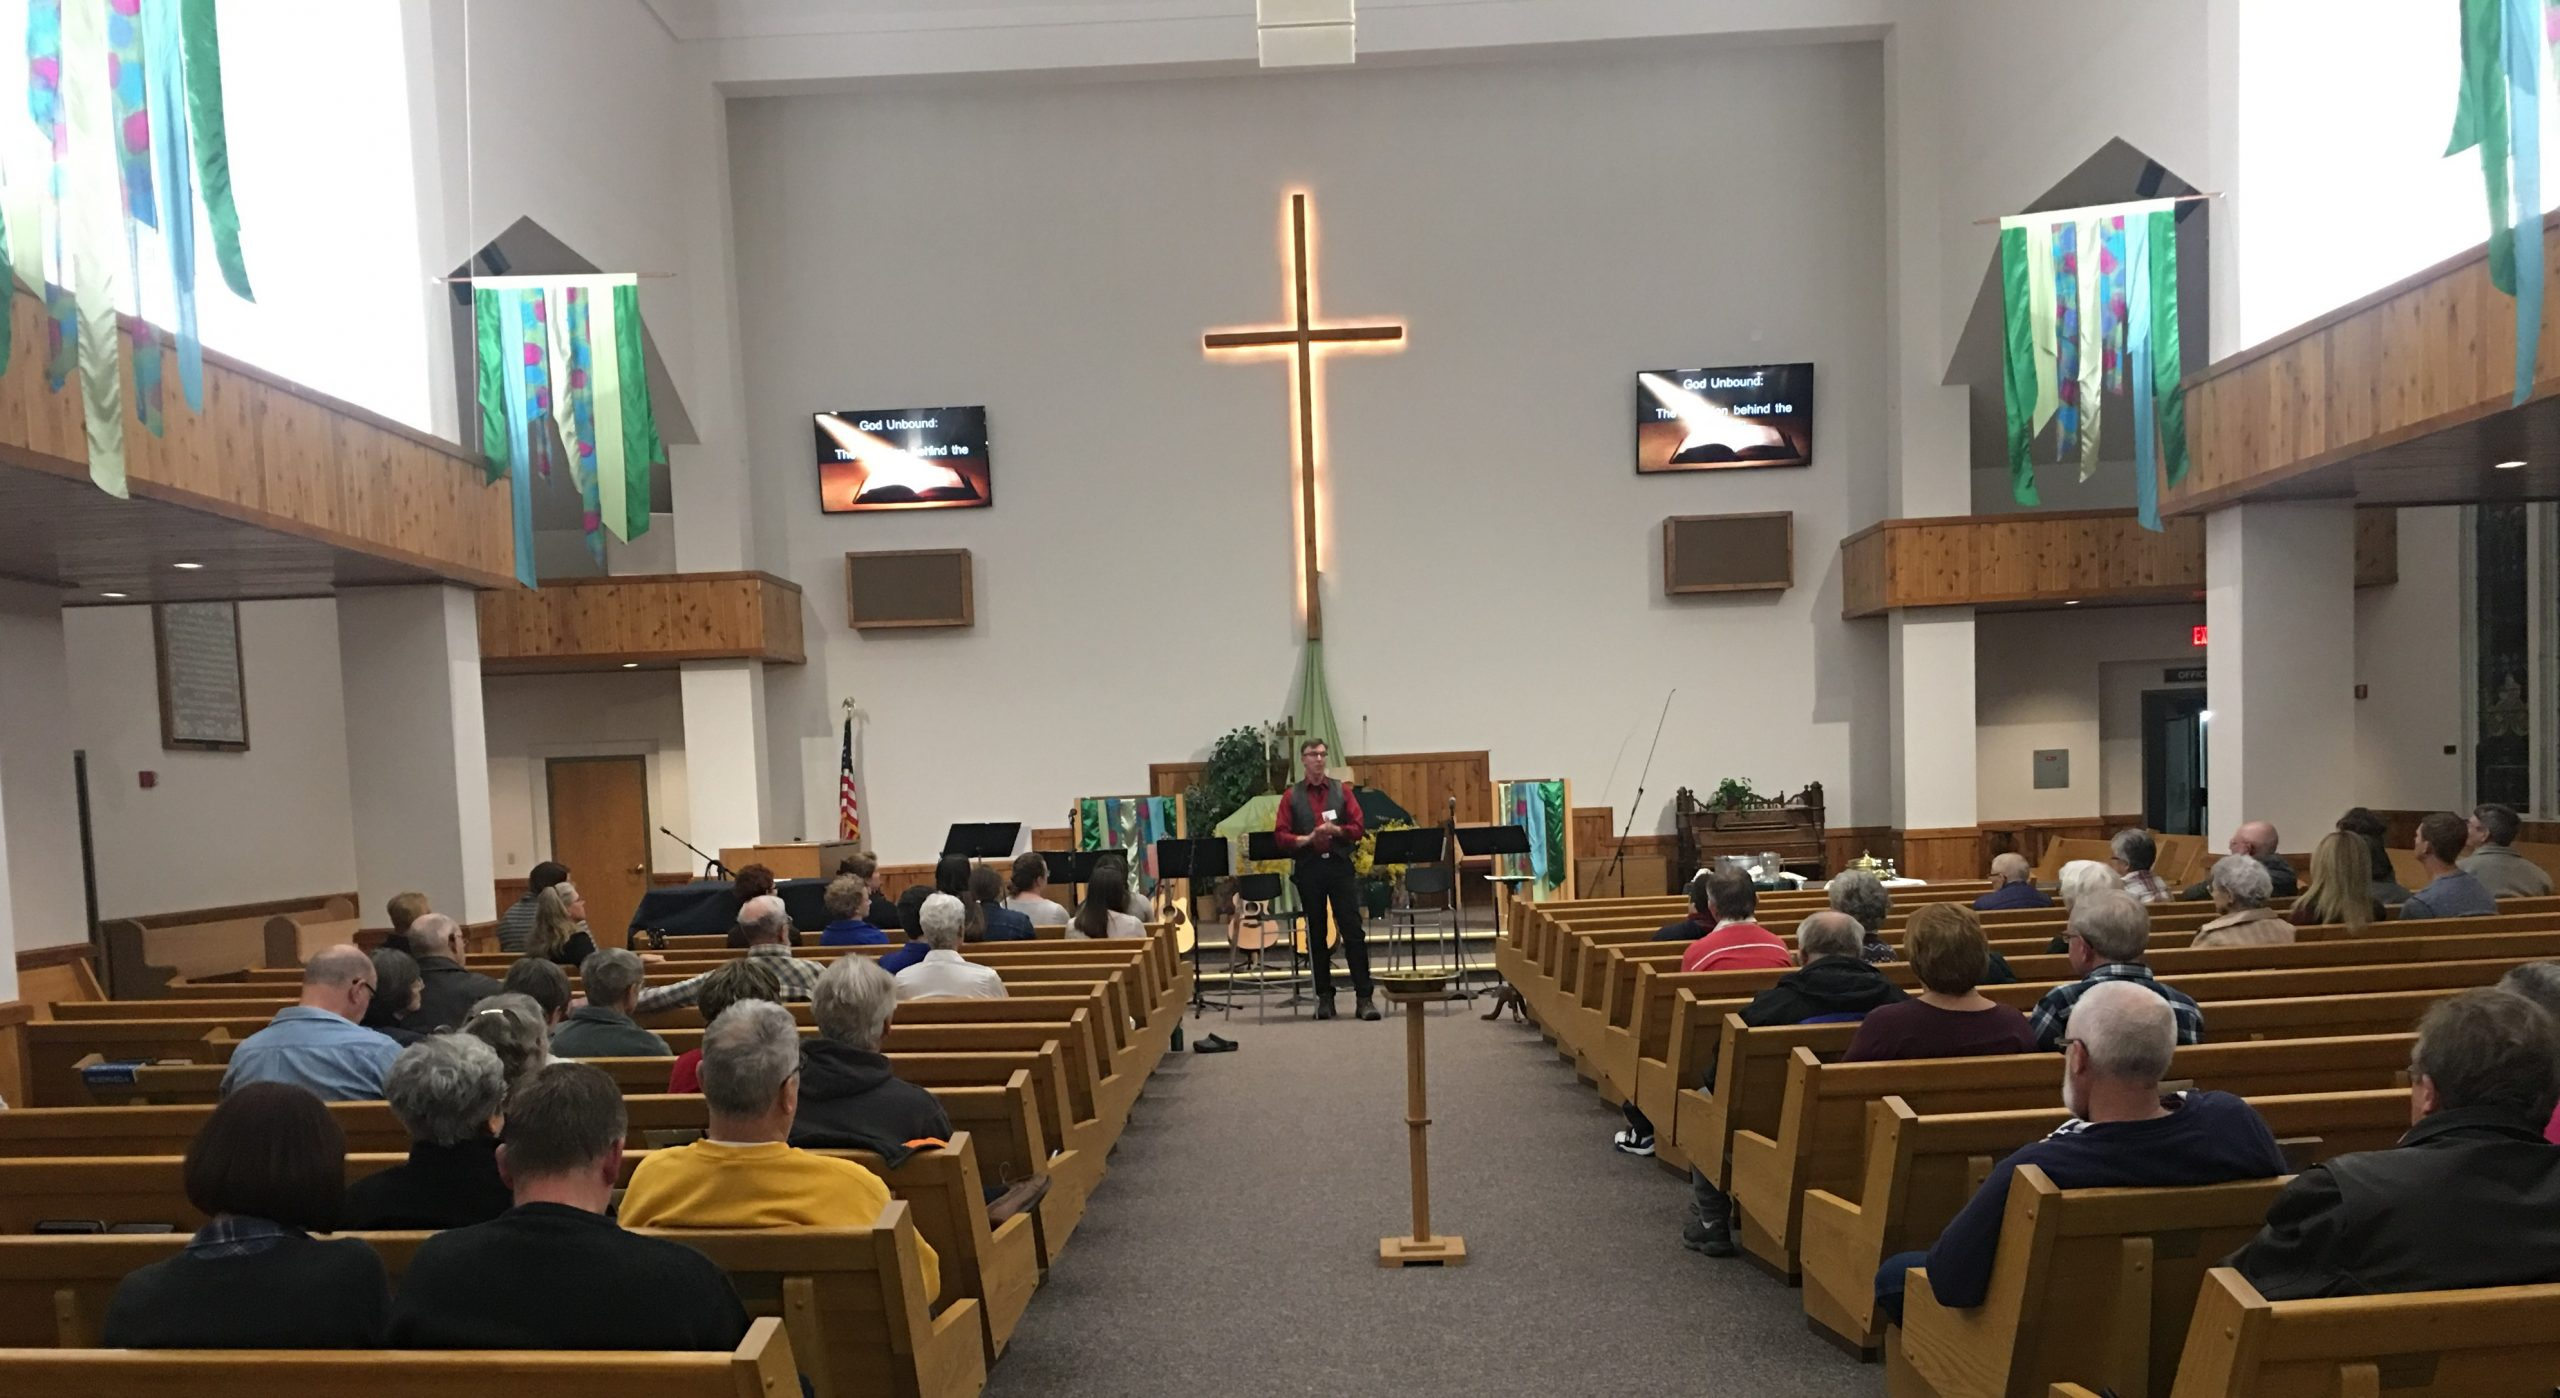 A Growing Church Serving a Growing Community